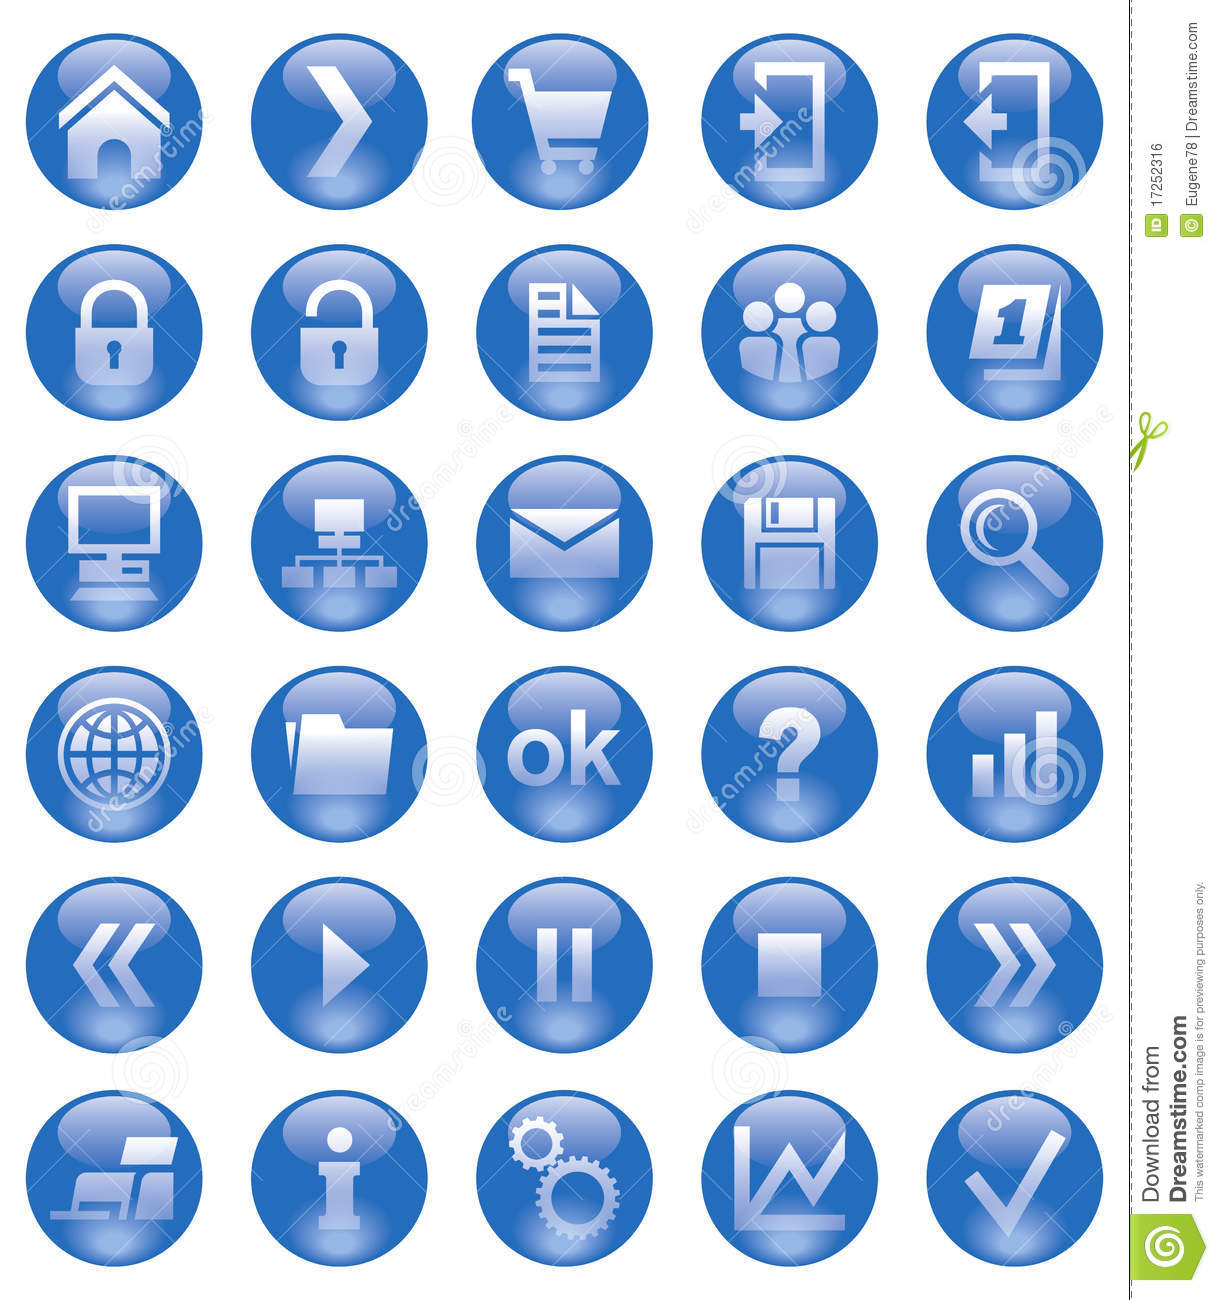 Best free website to download icons png – Angelina